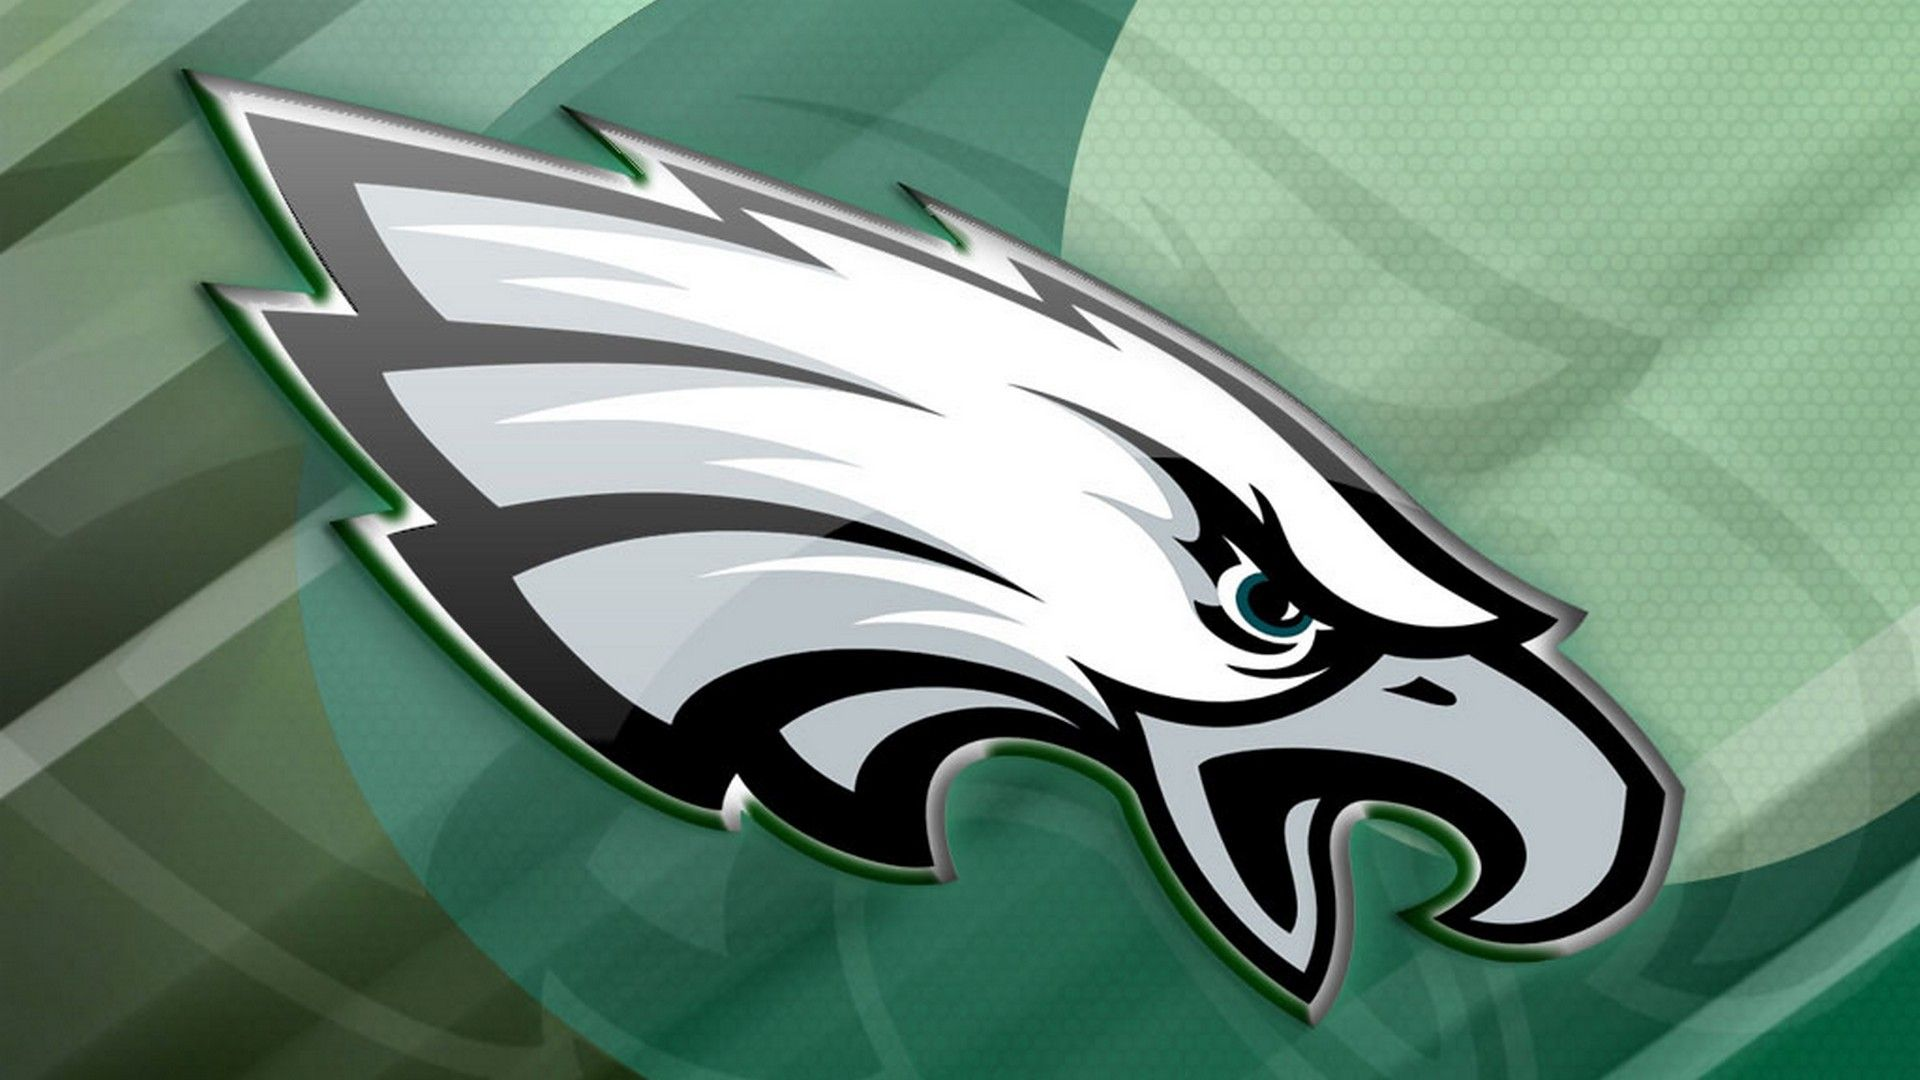 Nfl Wallpapers Philadelphia Eagles Wallpaper Philadelphia Eagles Logo Philadelphia Eagles Football